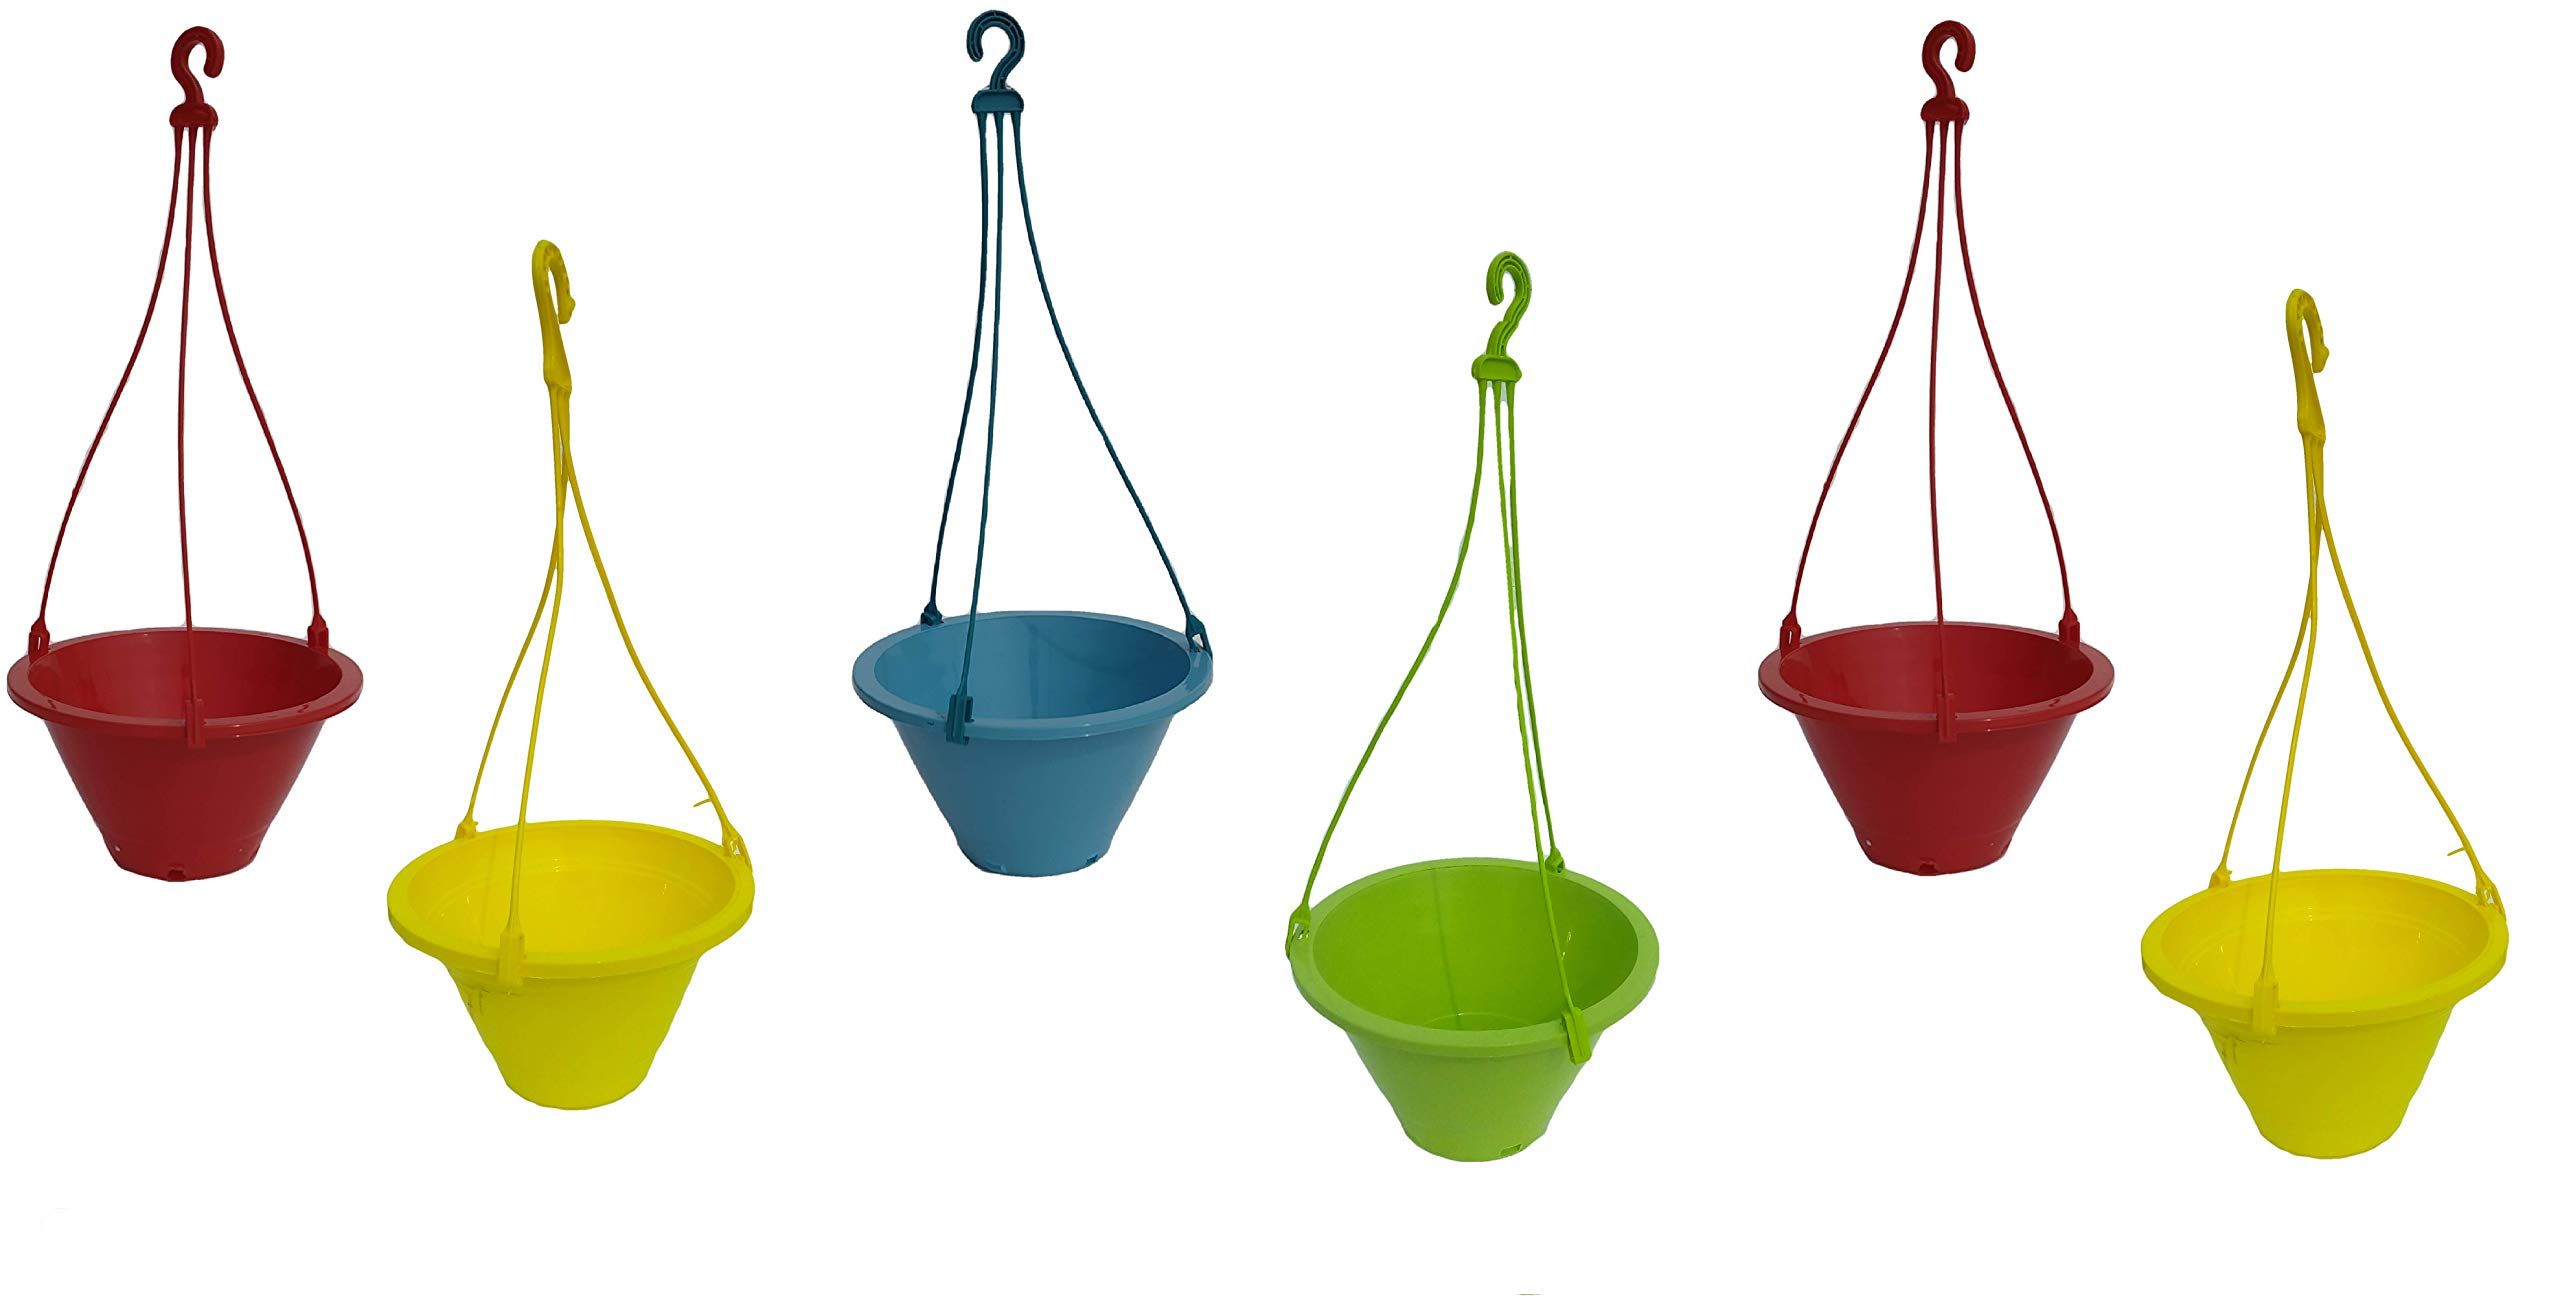 Truphe Garden Hanging Pot (Pack Of 6) - Multicolor product image